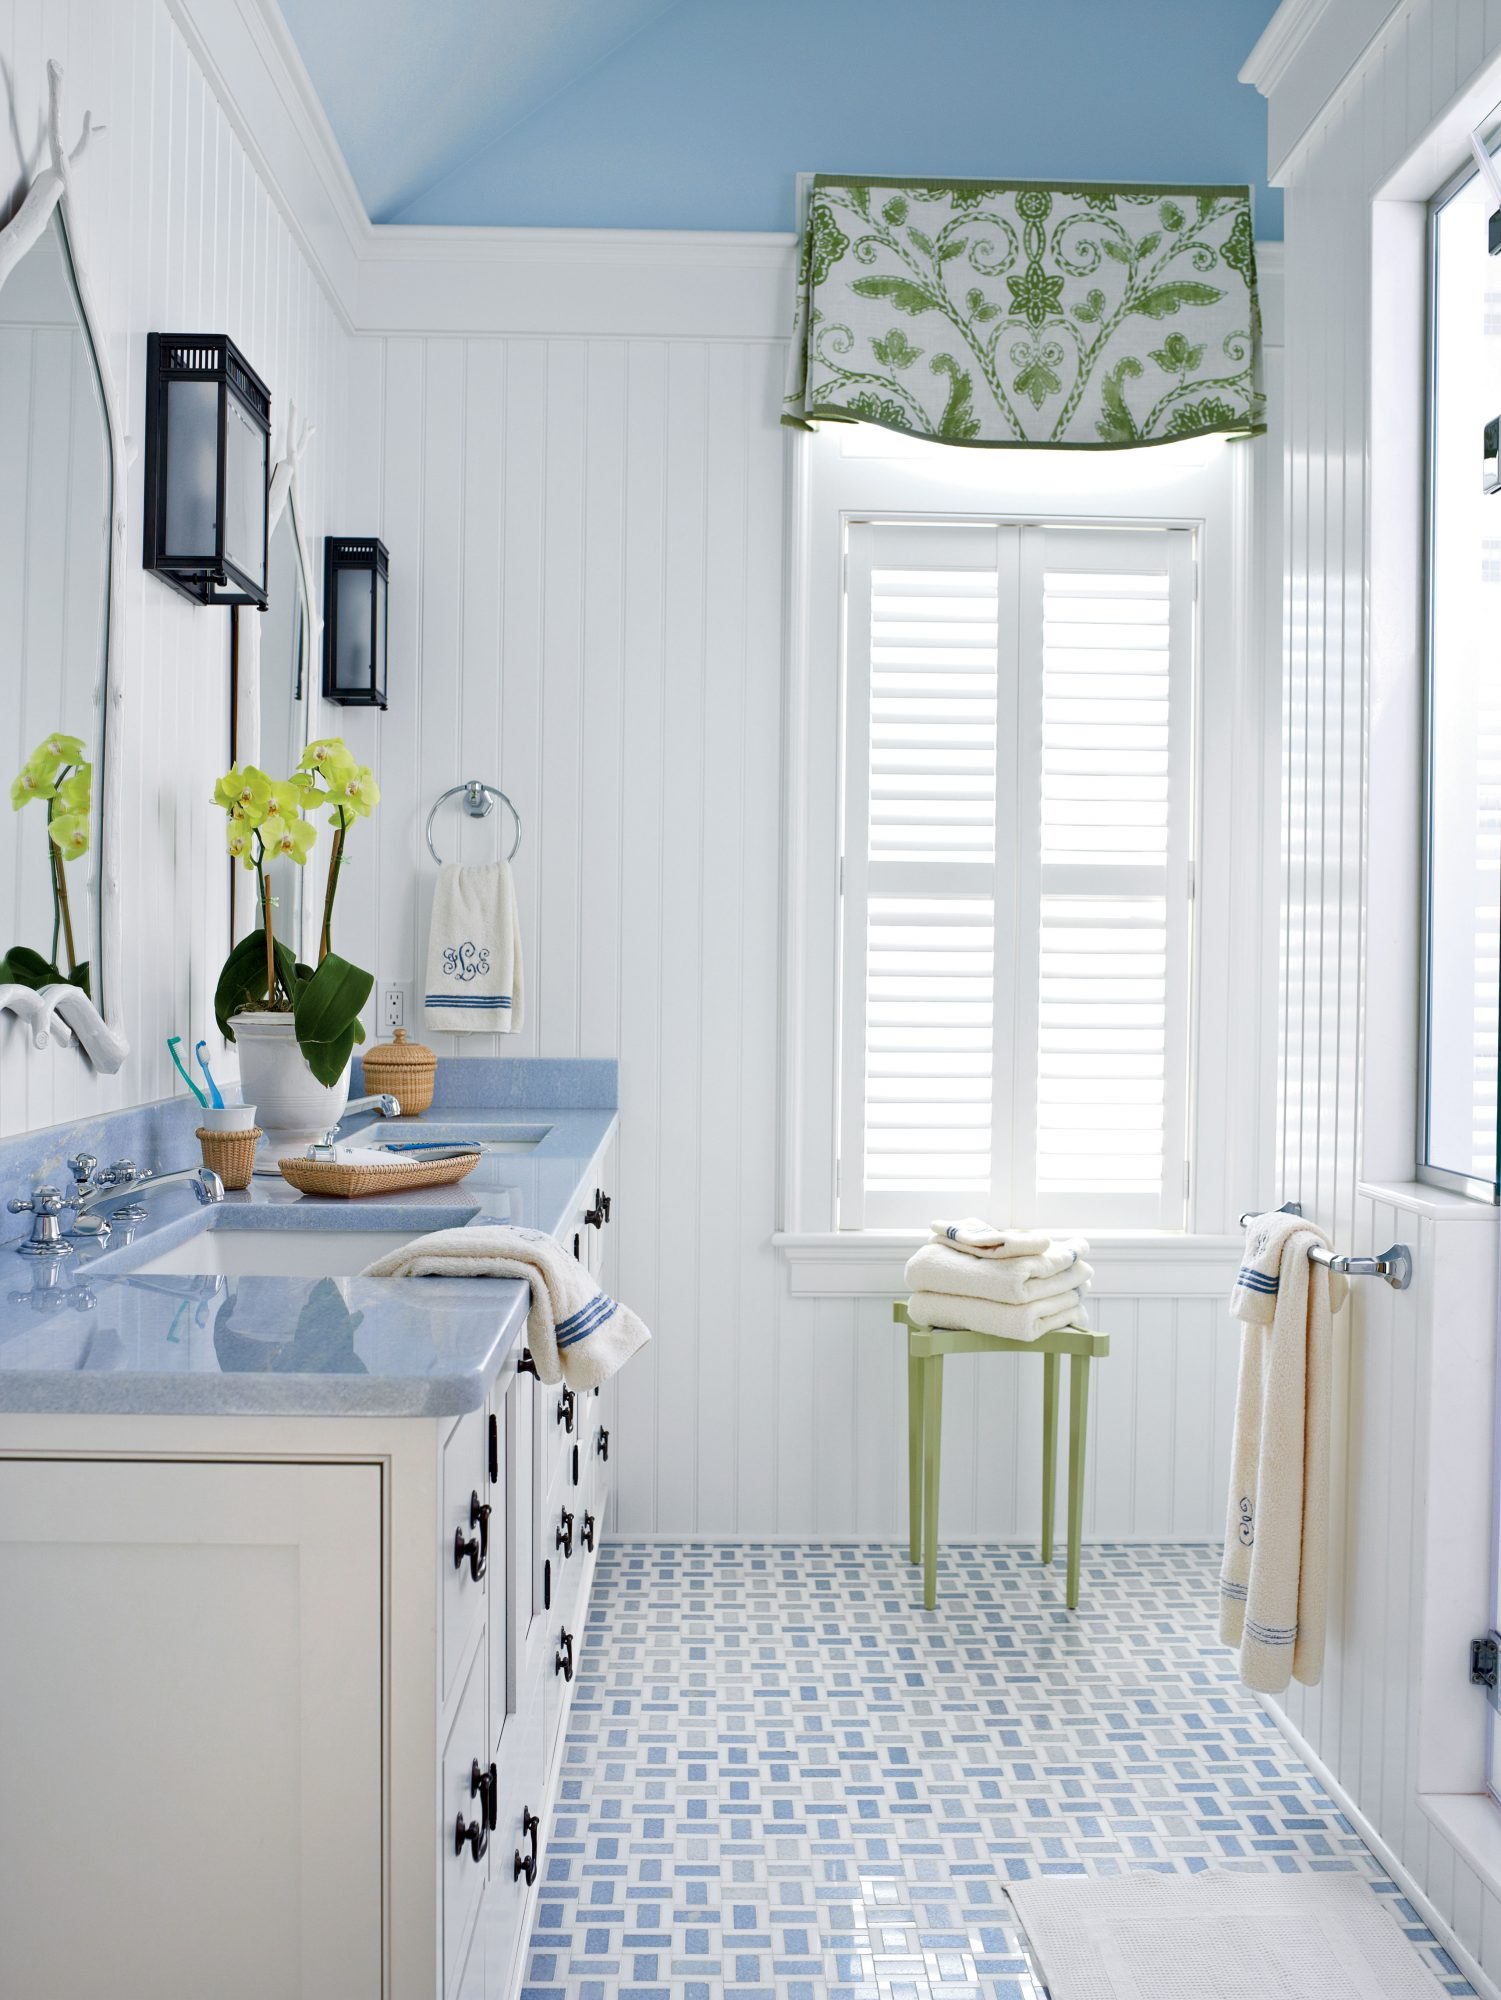 Blue and green accents liven up this pretty white bath. The room appears larger thanks to the vertical boards and the painted ceiling.